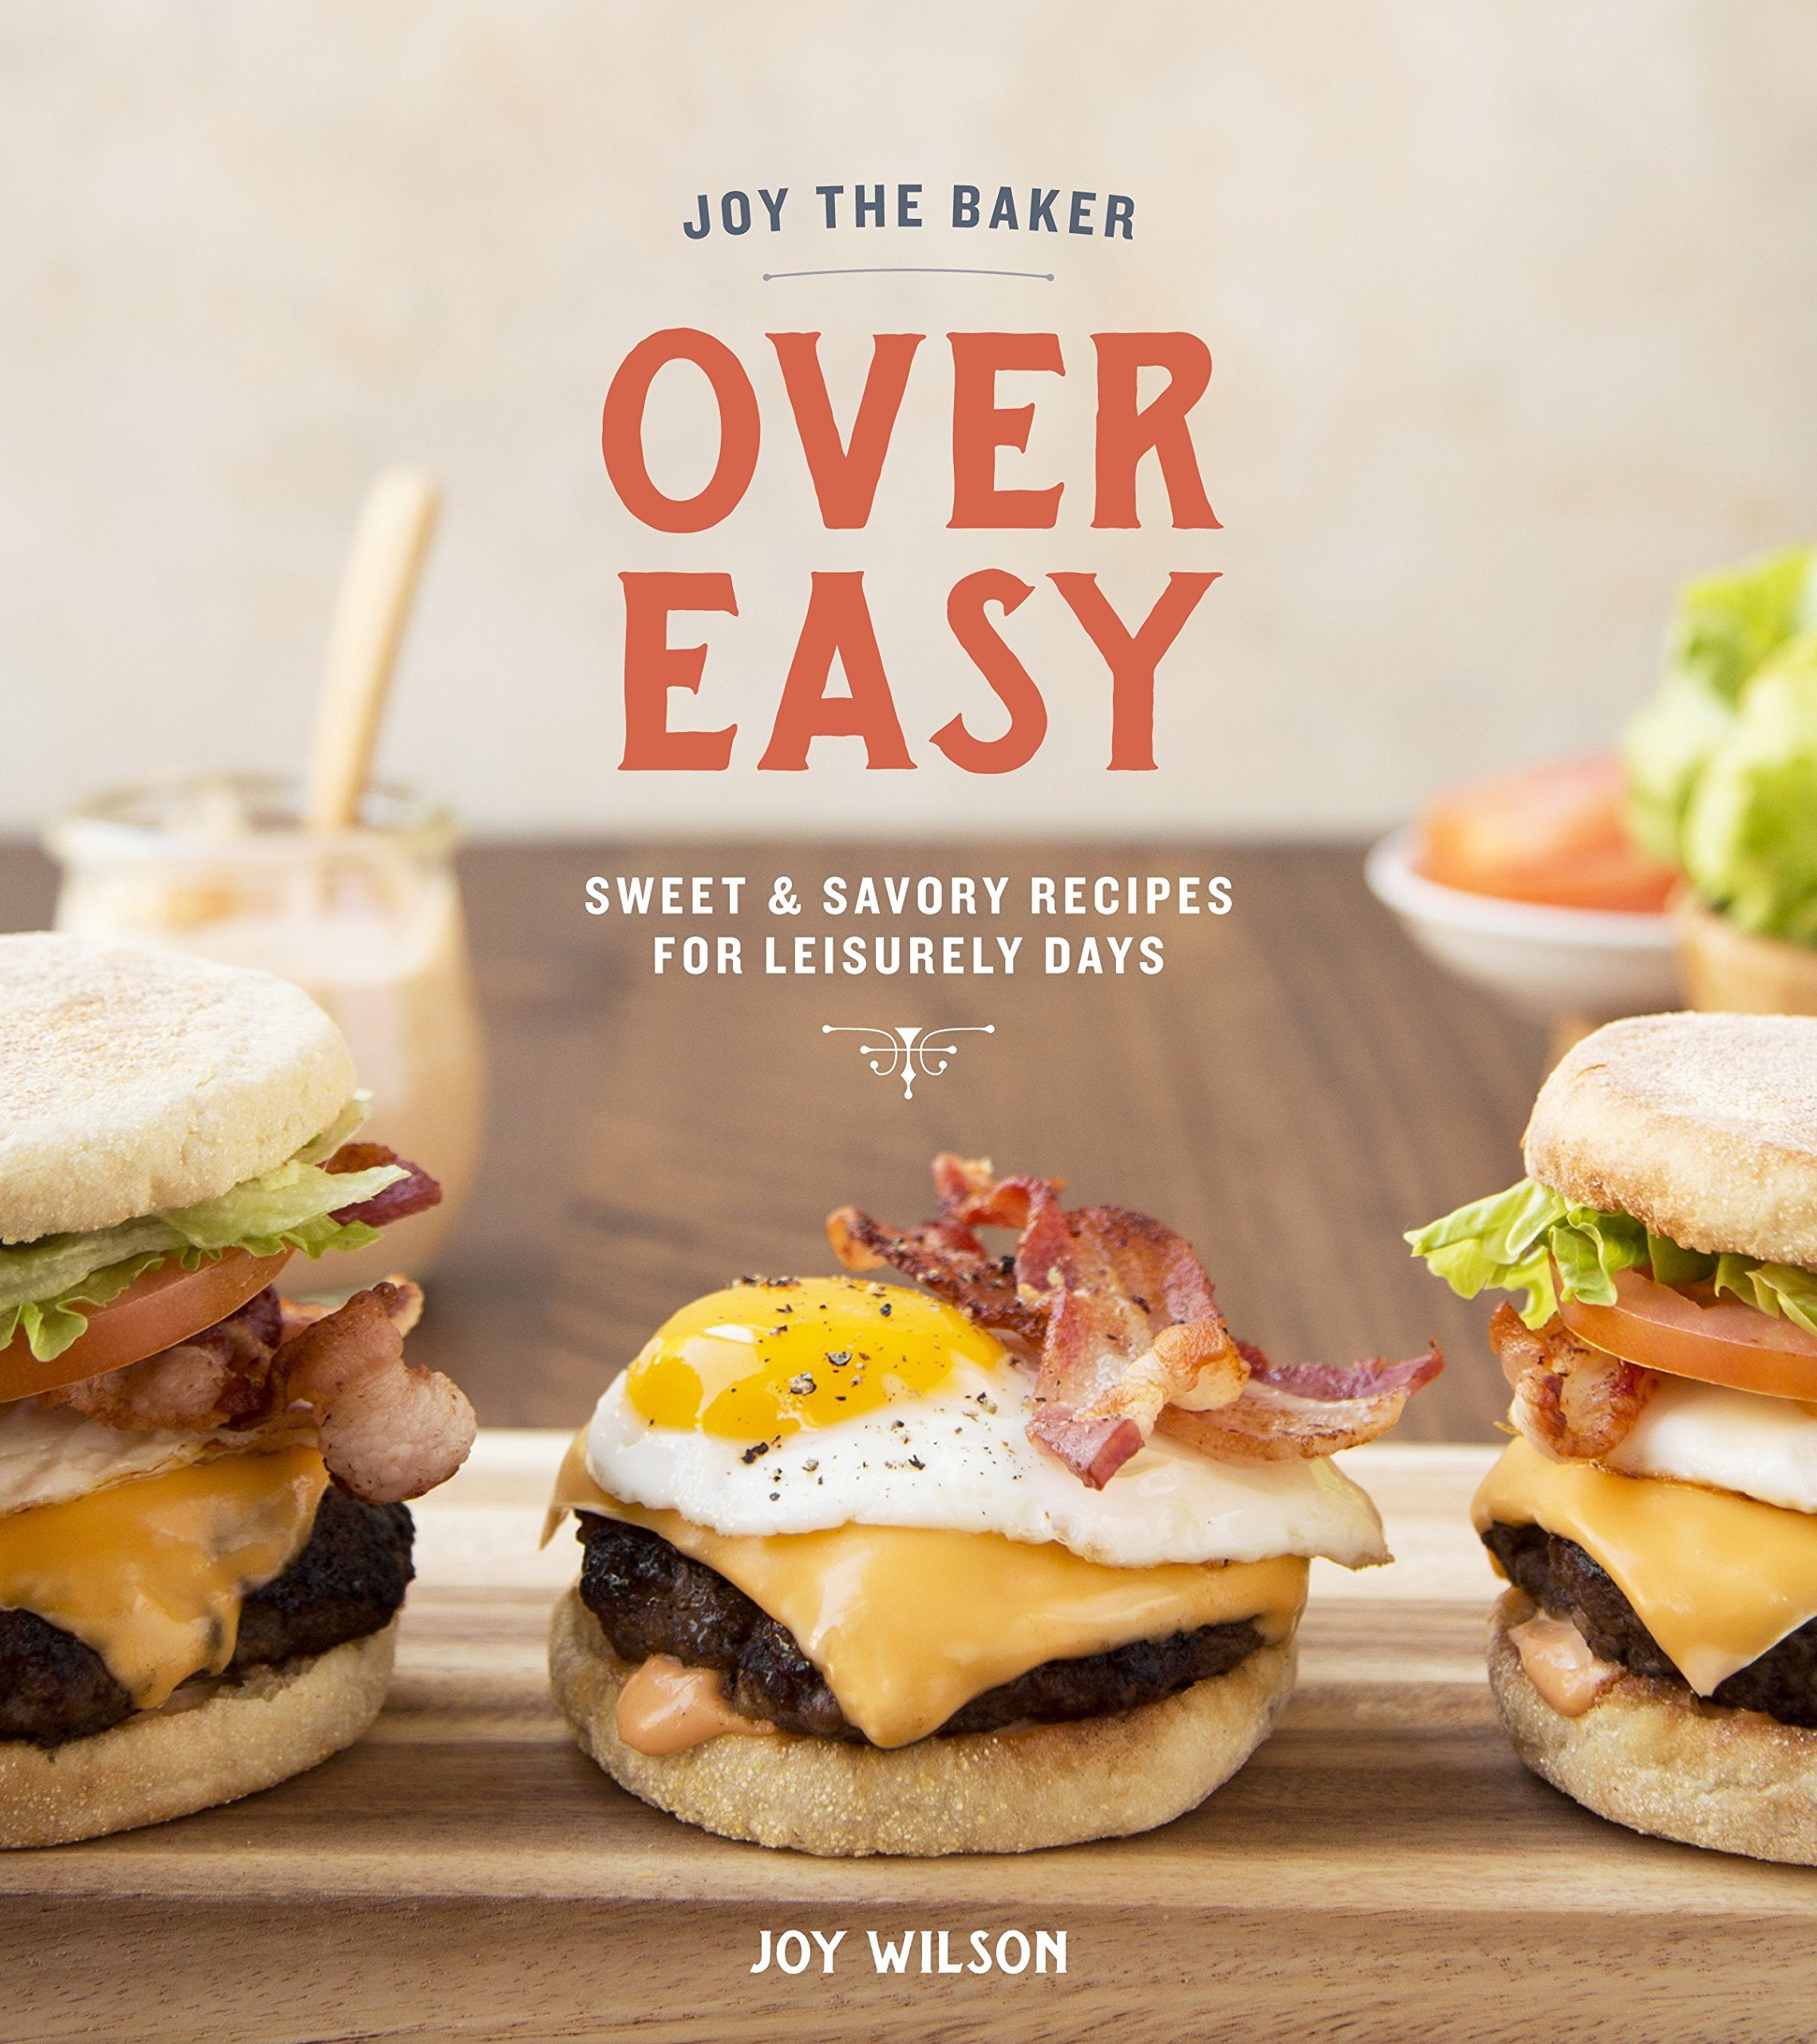 joy-the-baker-over-easy-sweet-and-savory-recipes-for-leisurely-days